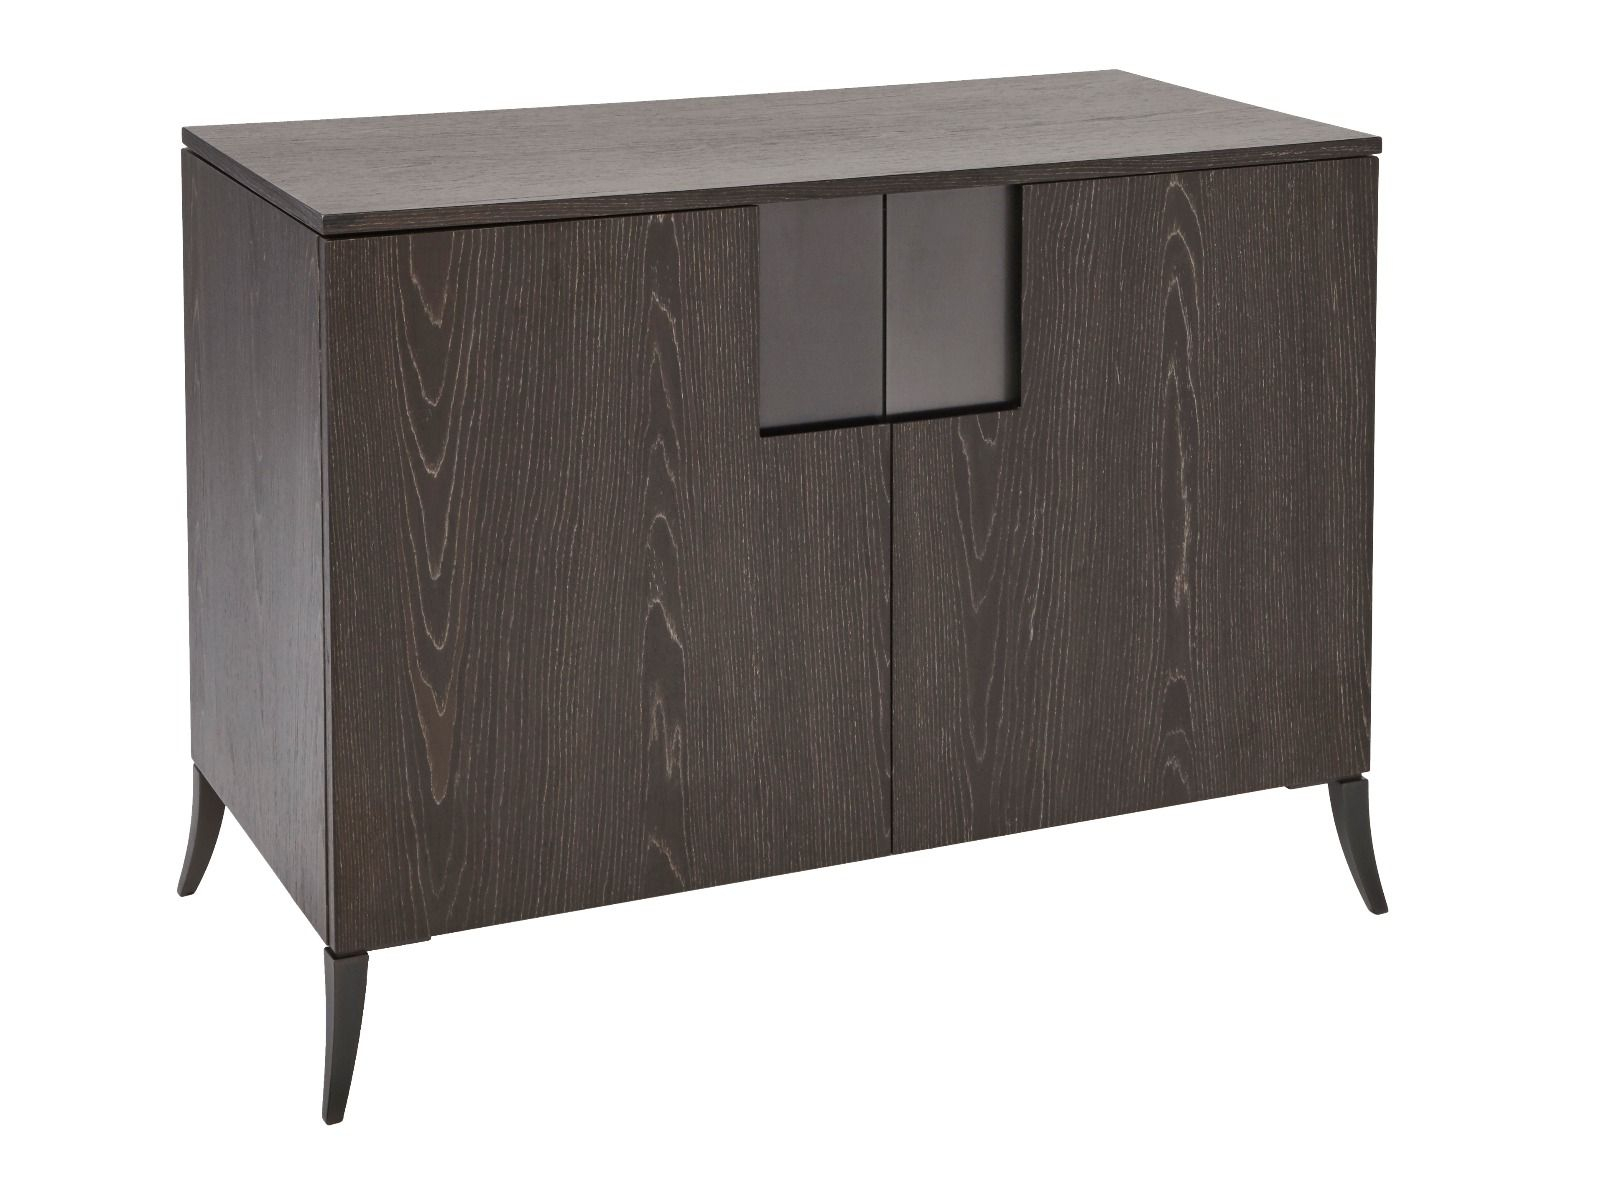 Buffet Sideboard Single Length Throughout 2 Shelf Buffets With Curved Legs (View 8 of 30)